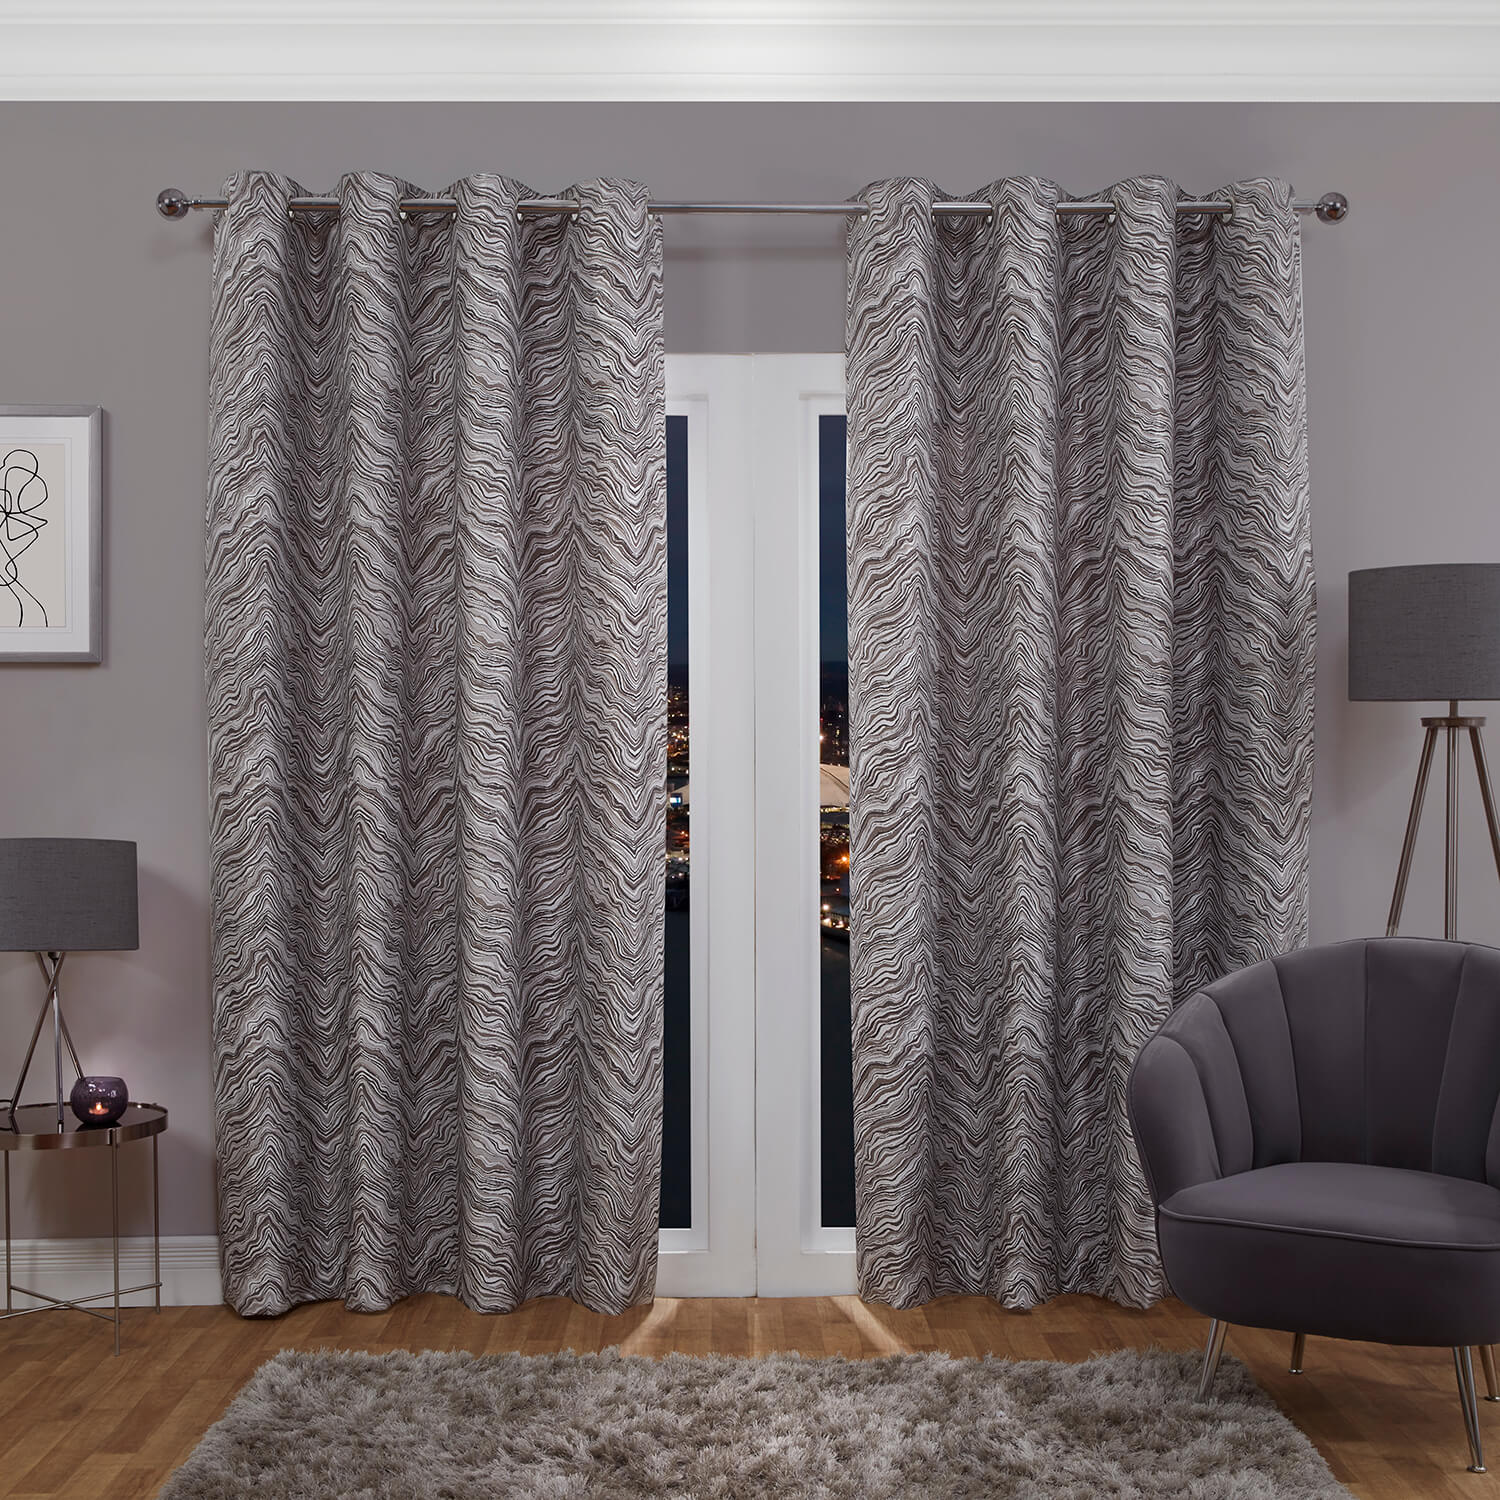 HYDE NATURAL 66x54 Curtain